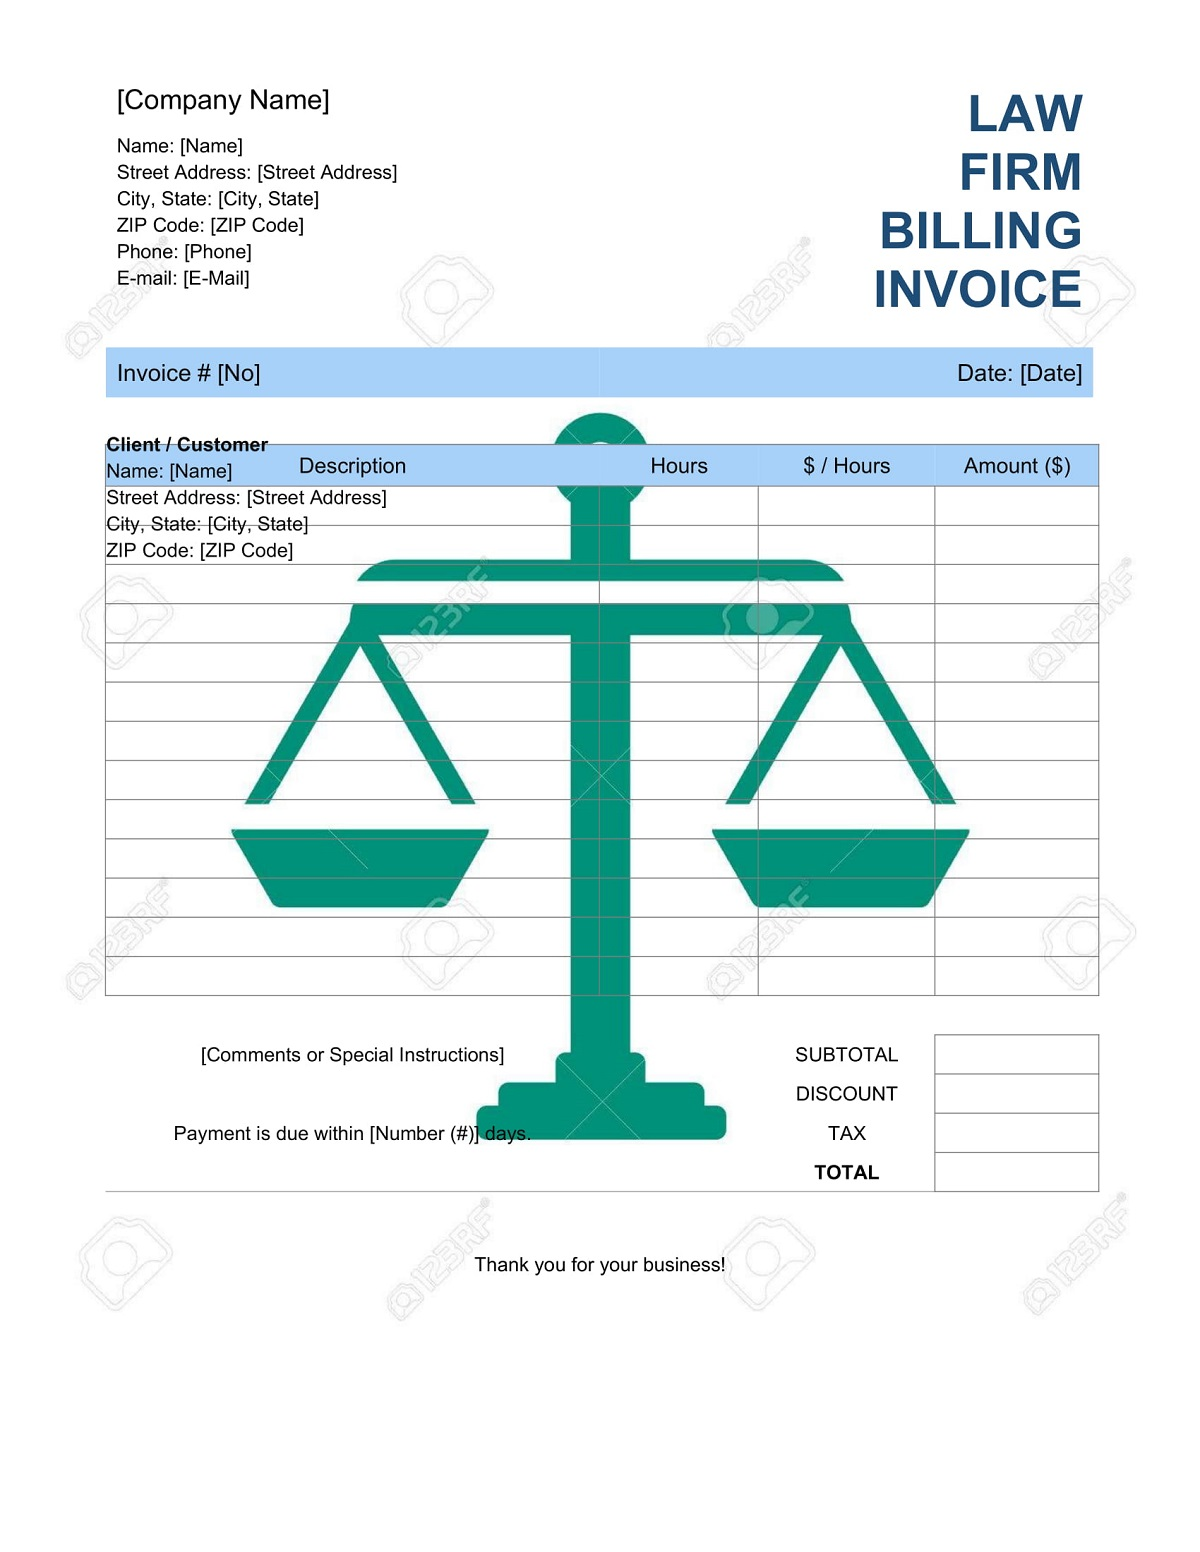 Law Firm Billing Invoice Template Word Format